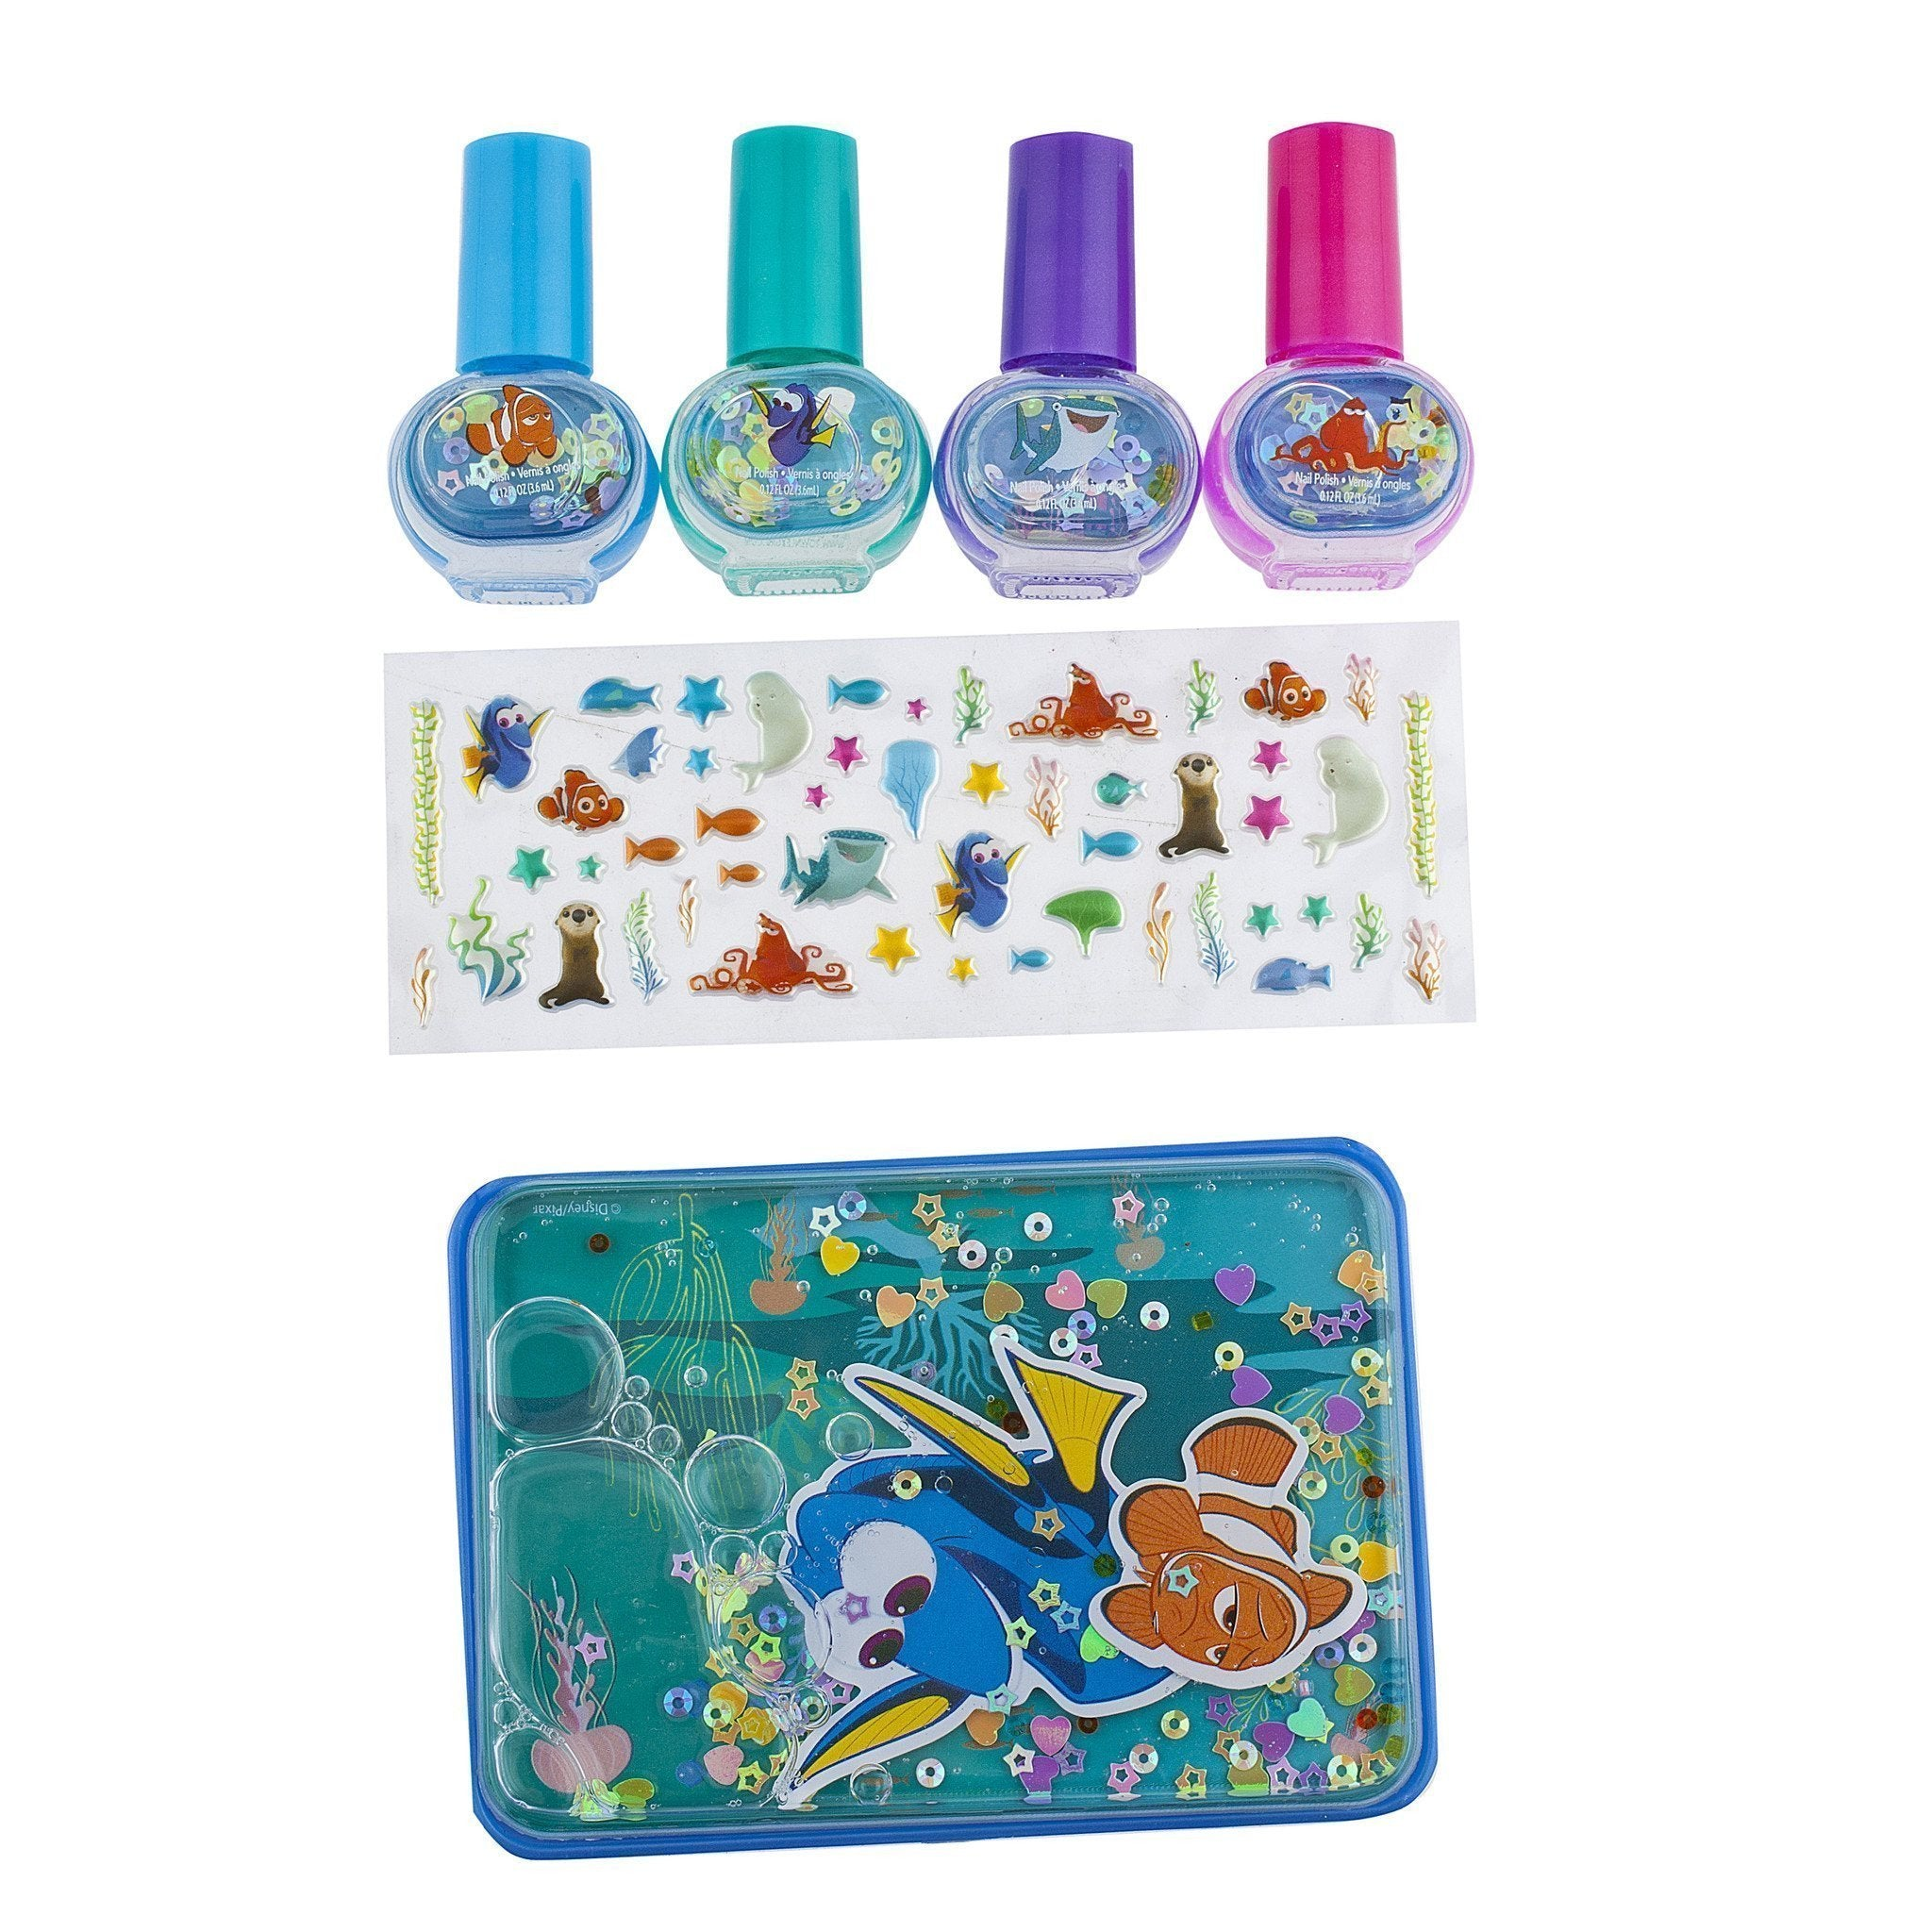 finding dory 4 pack nail polish with stickers and carrying case set